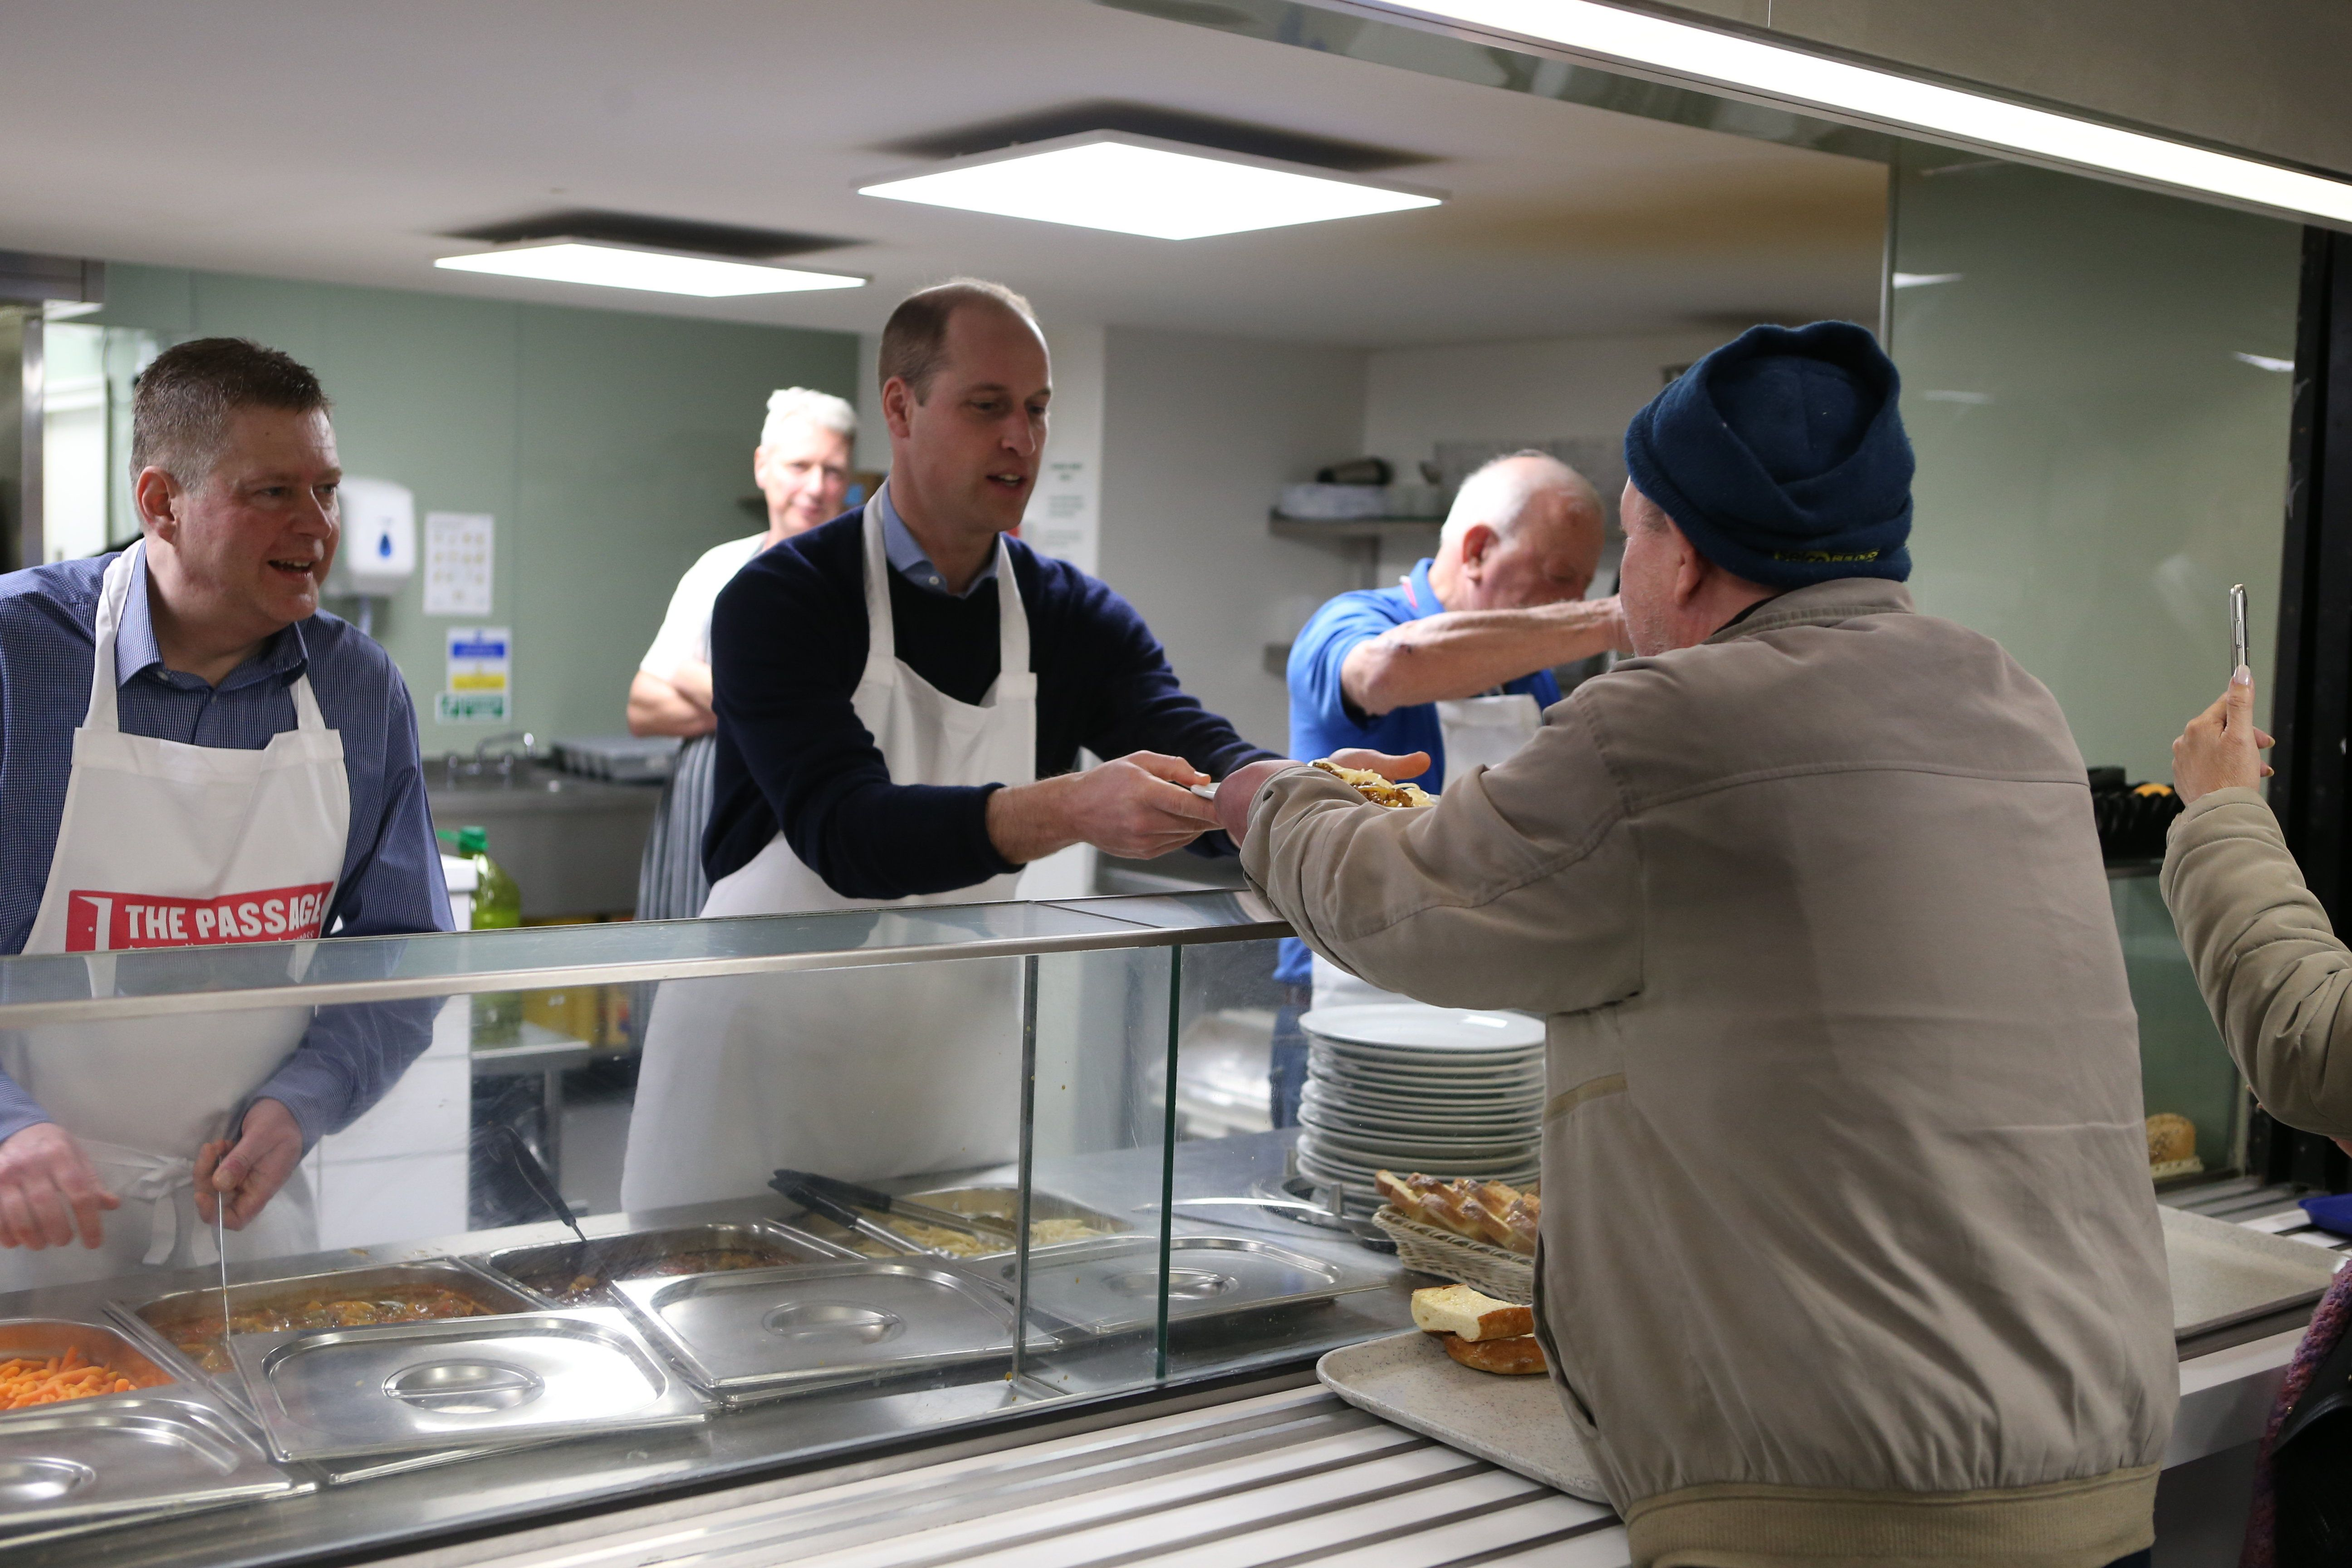 Prince William serves food at The Passage Charity.